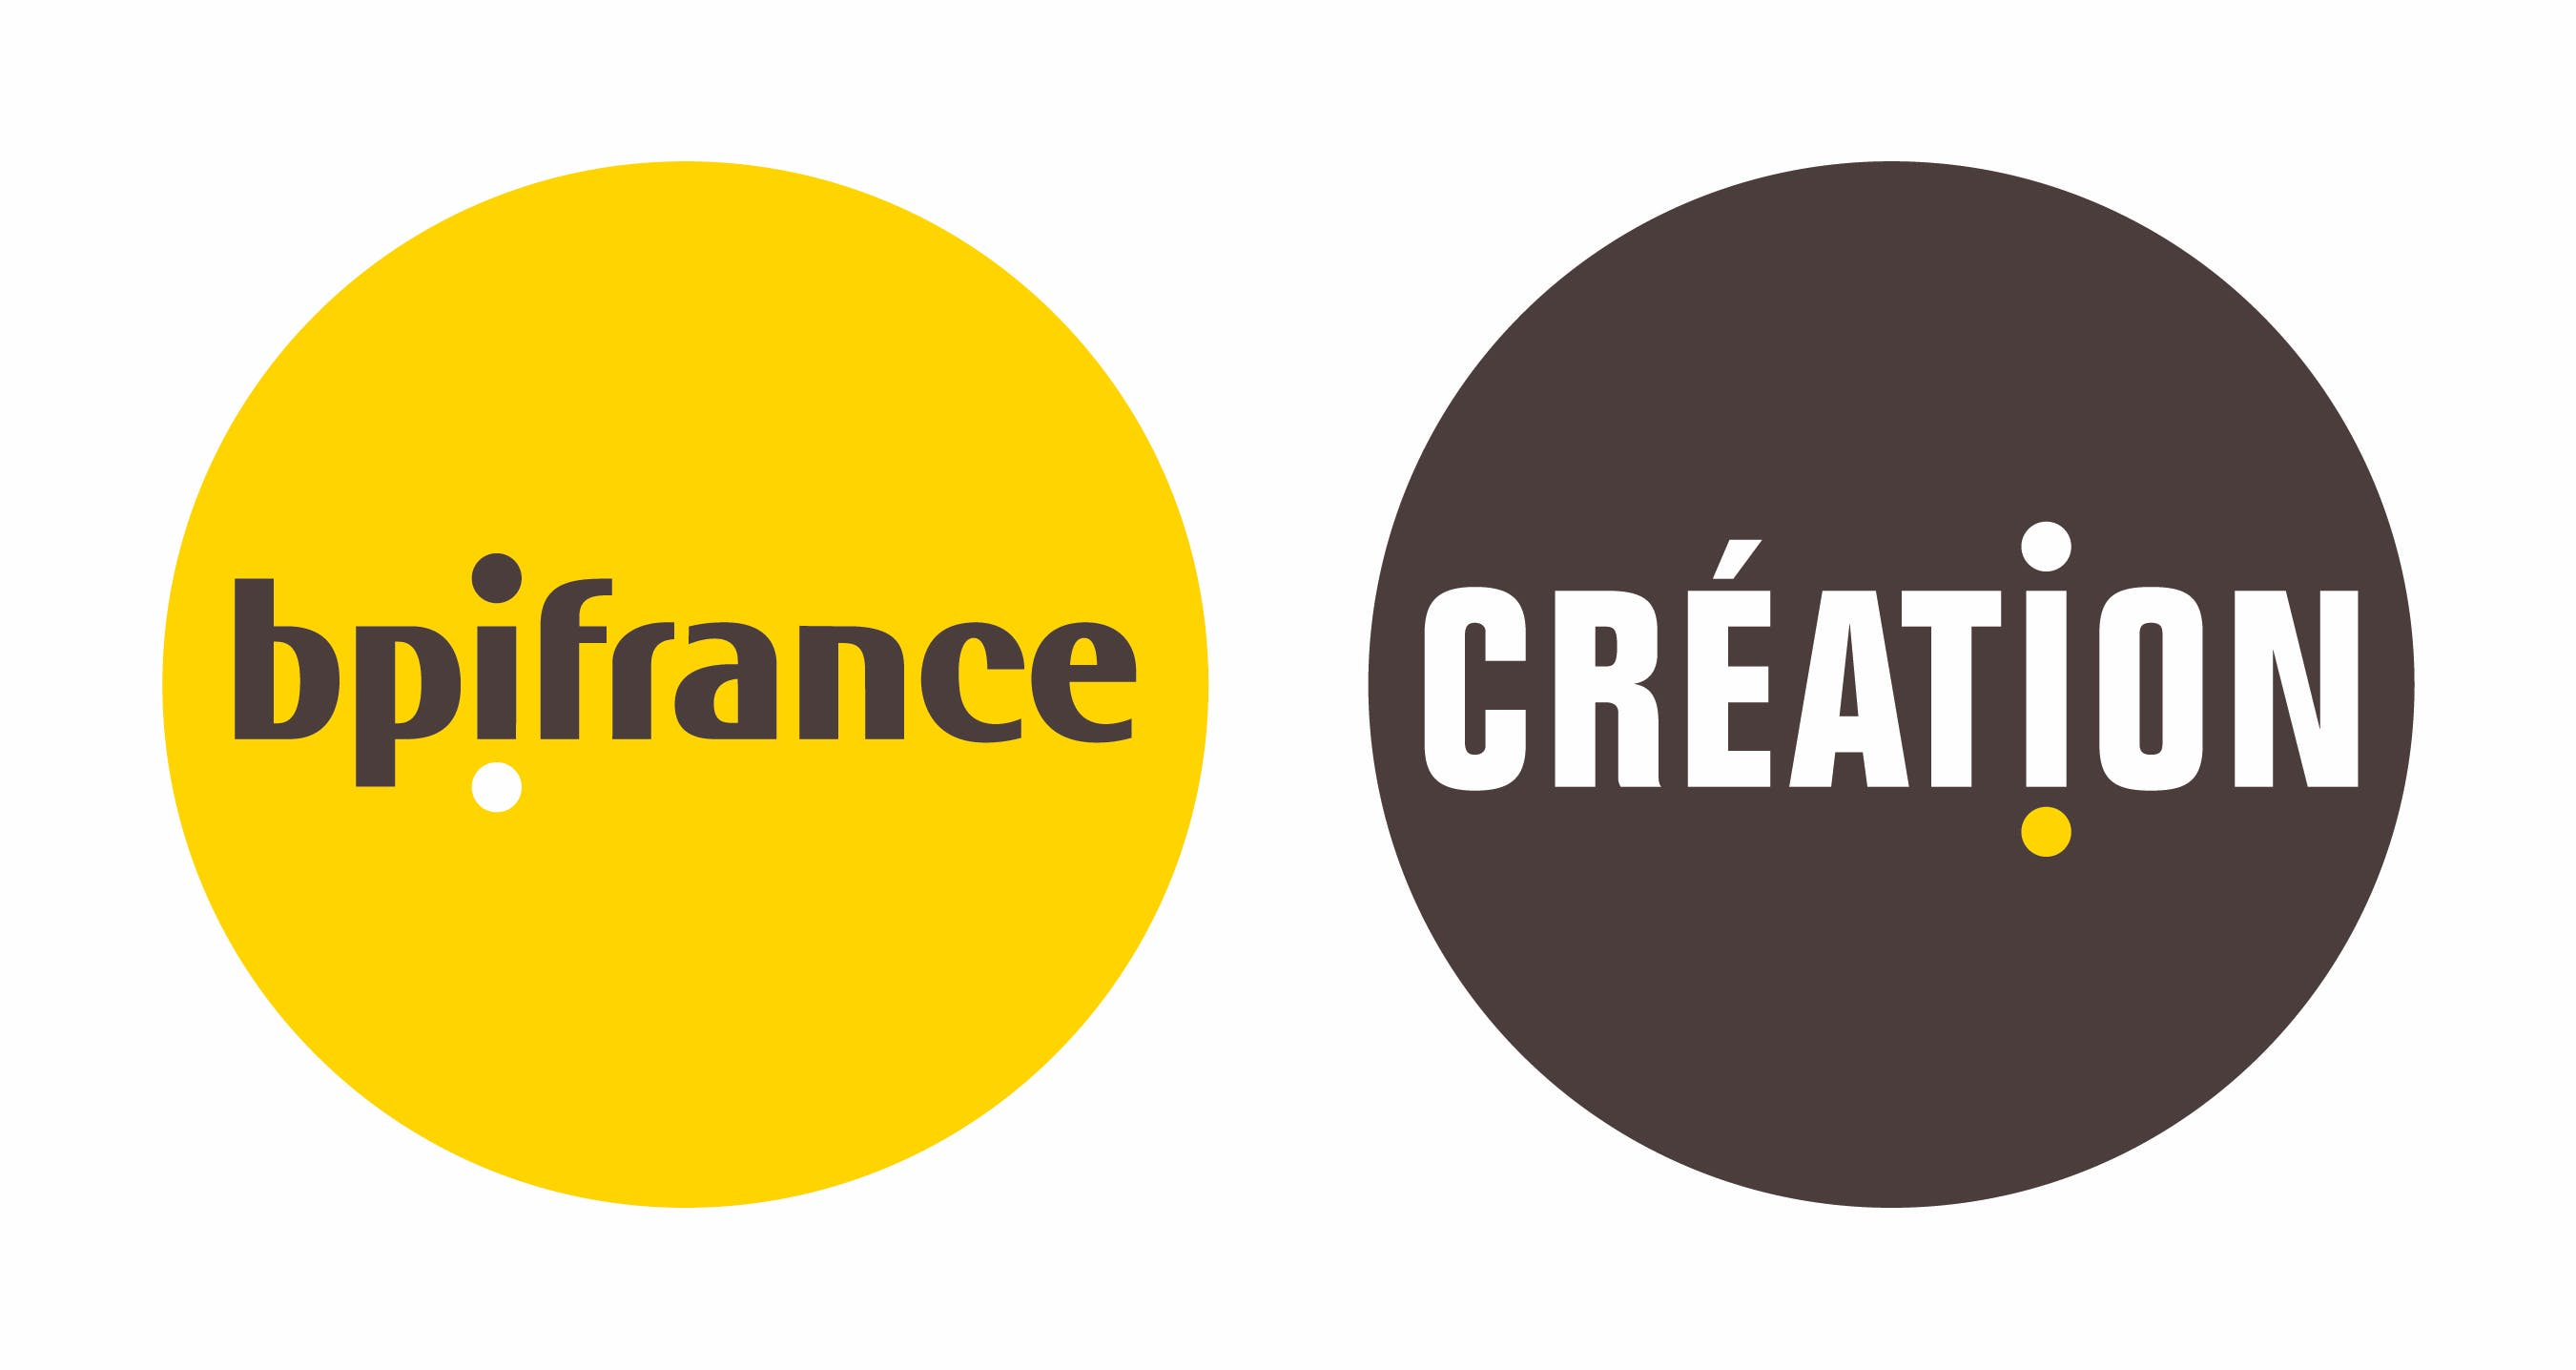 Bpifrance Creation jpg